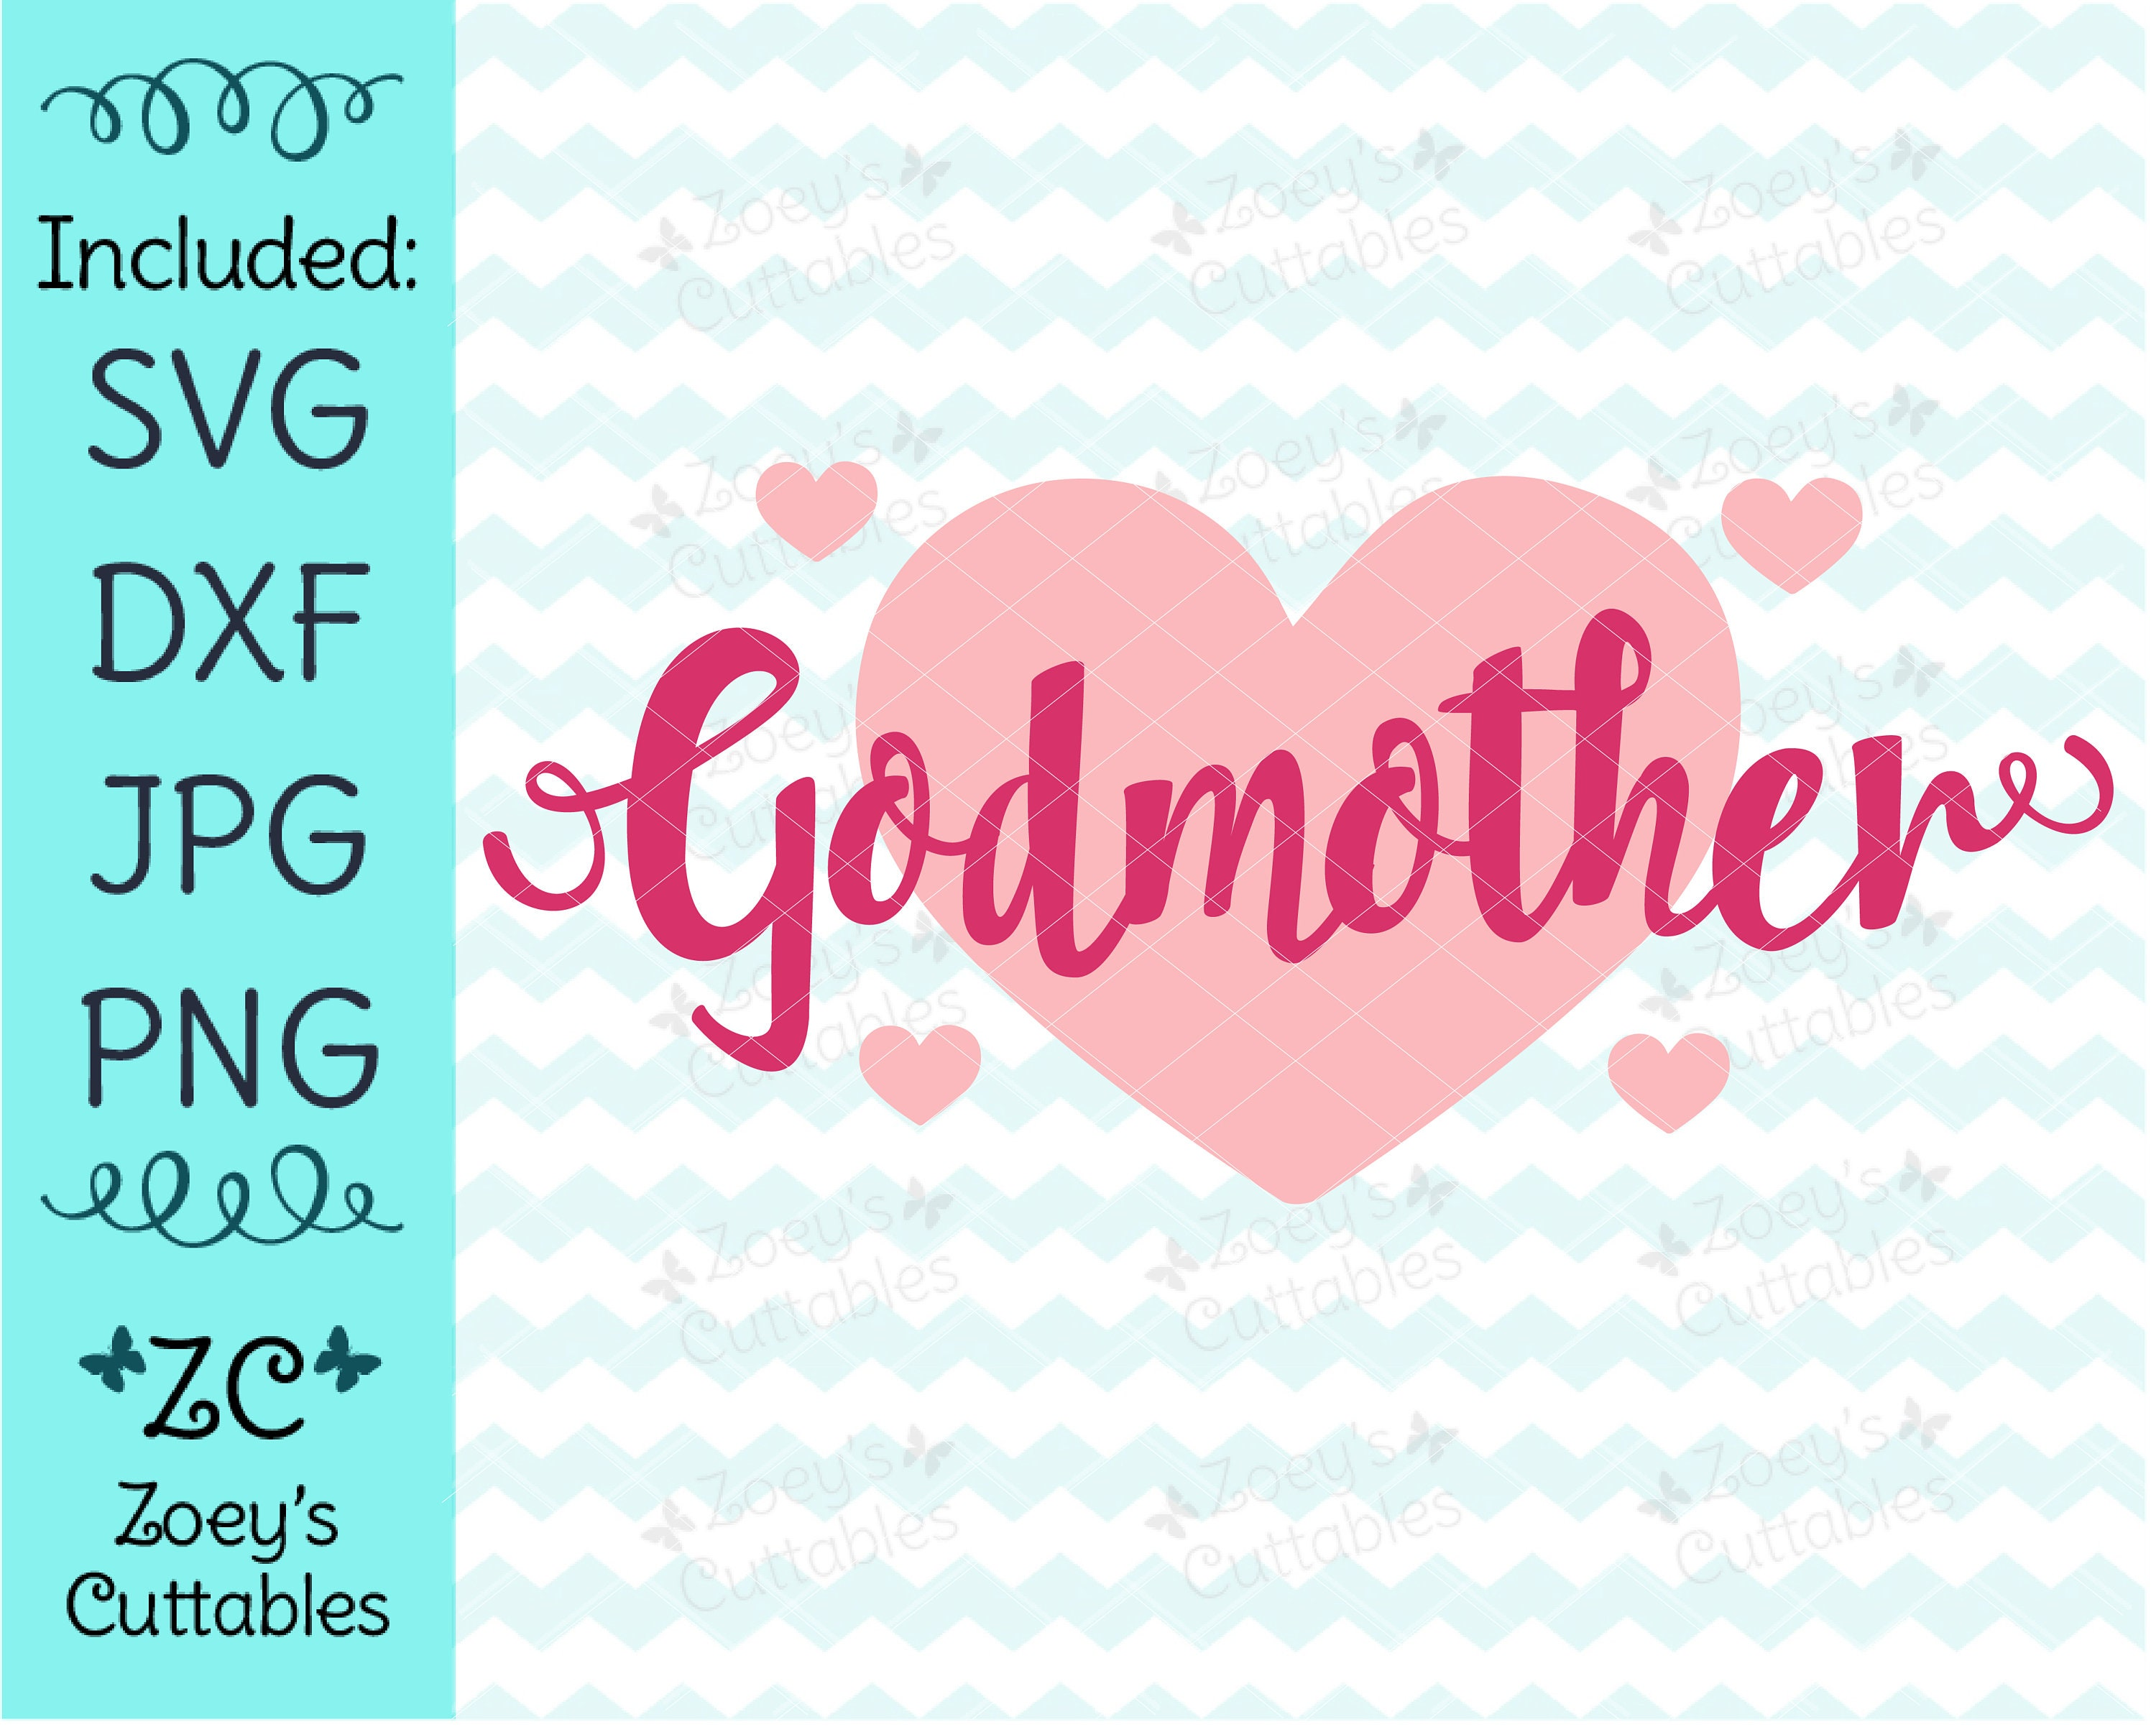 Godmother SVG Best Godmother SVG Goddaughter SVG Godmother | Etsy